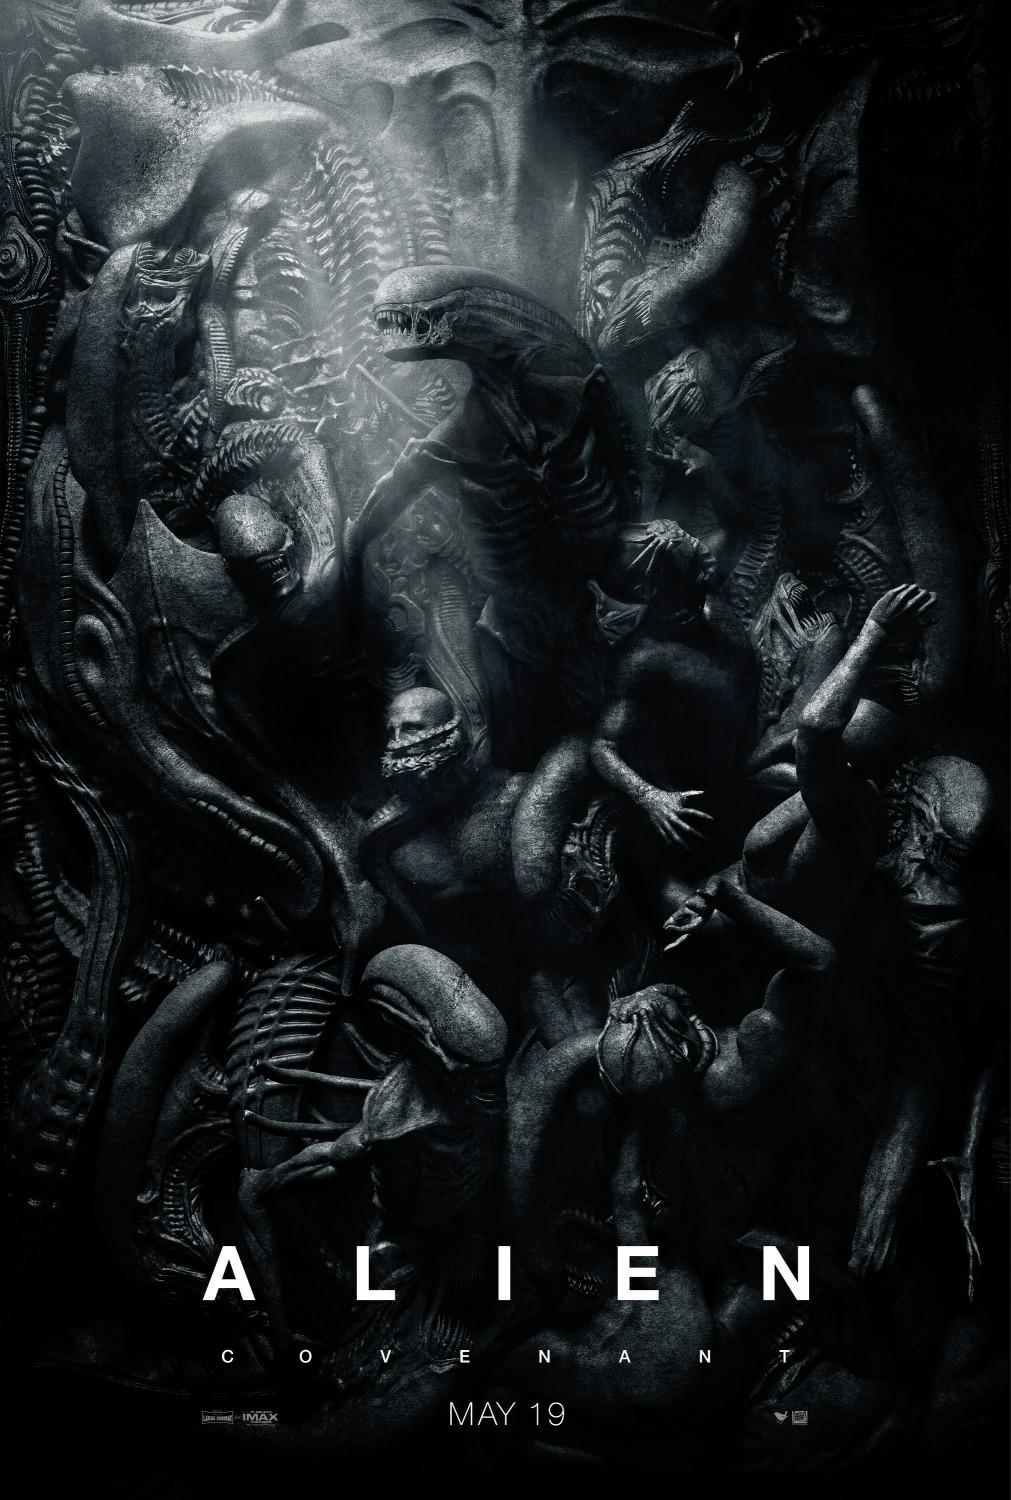 Alien covenant 2017 film poster